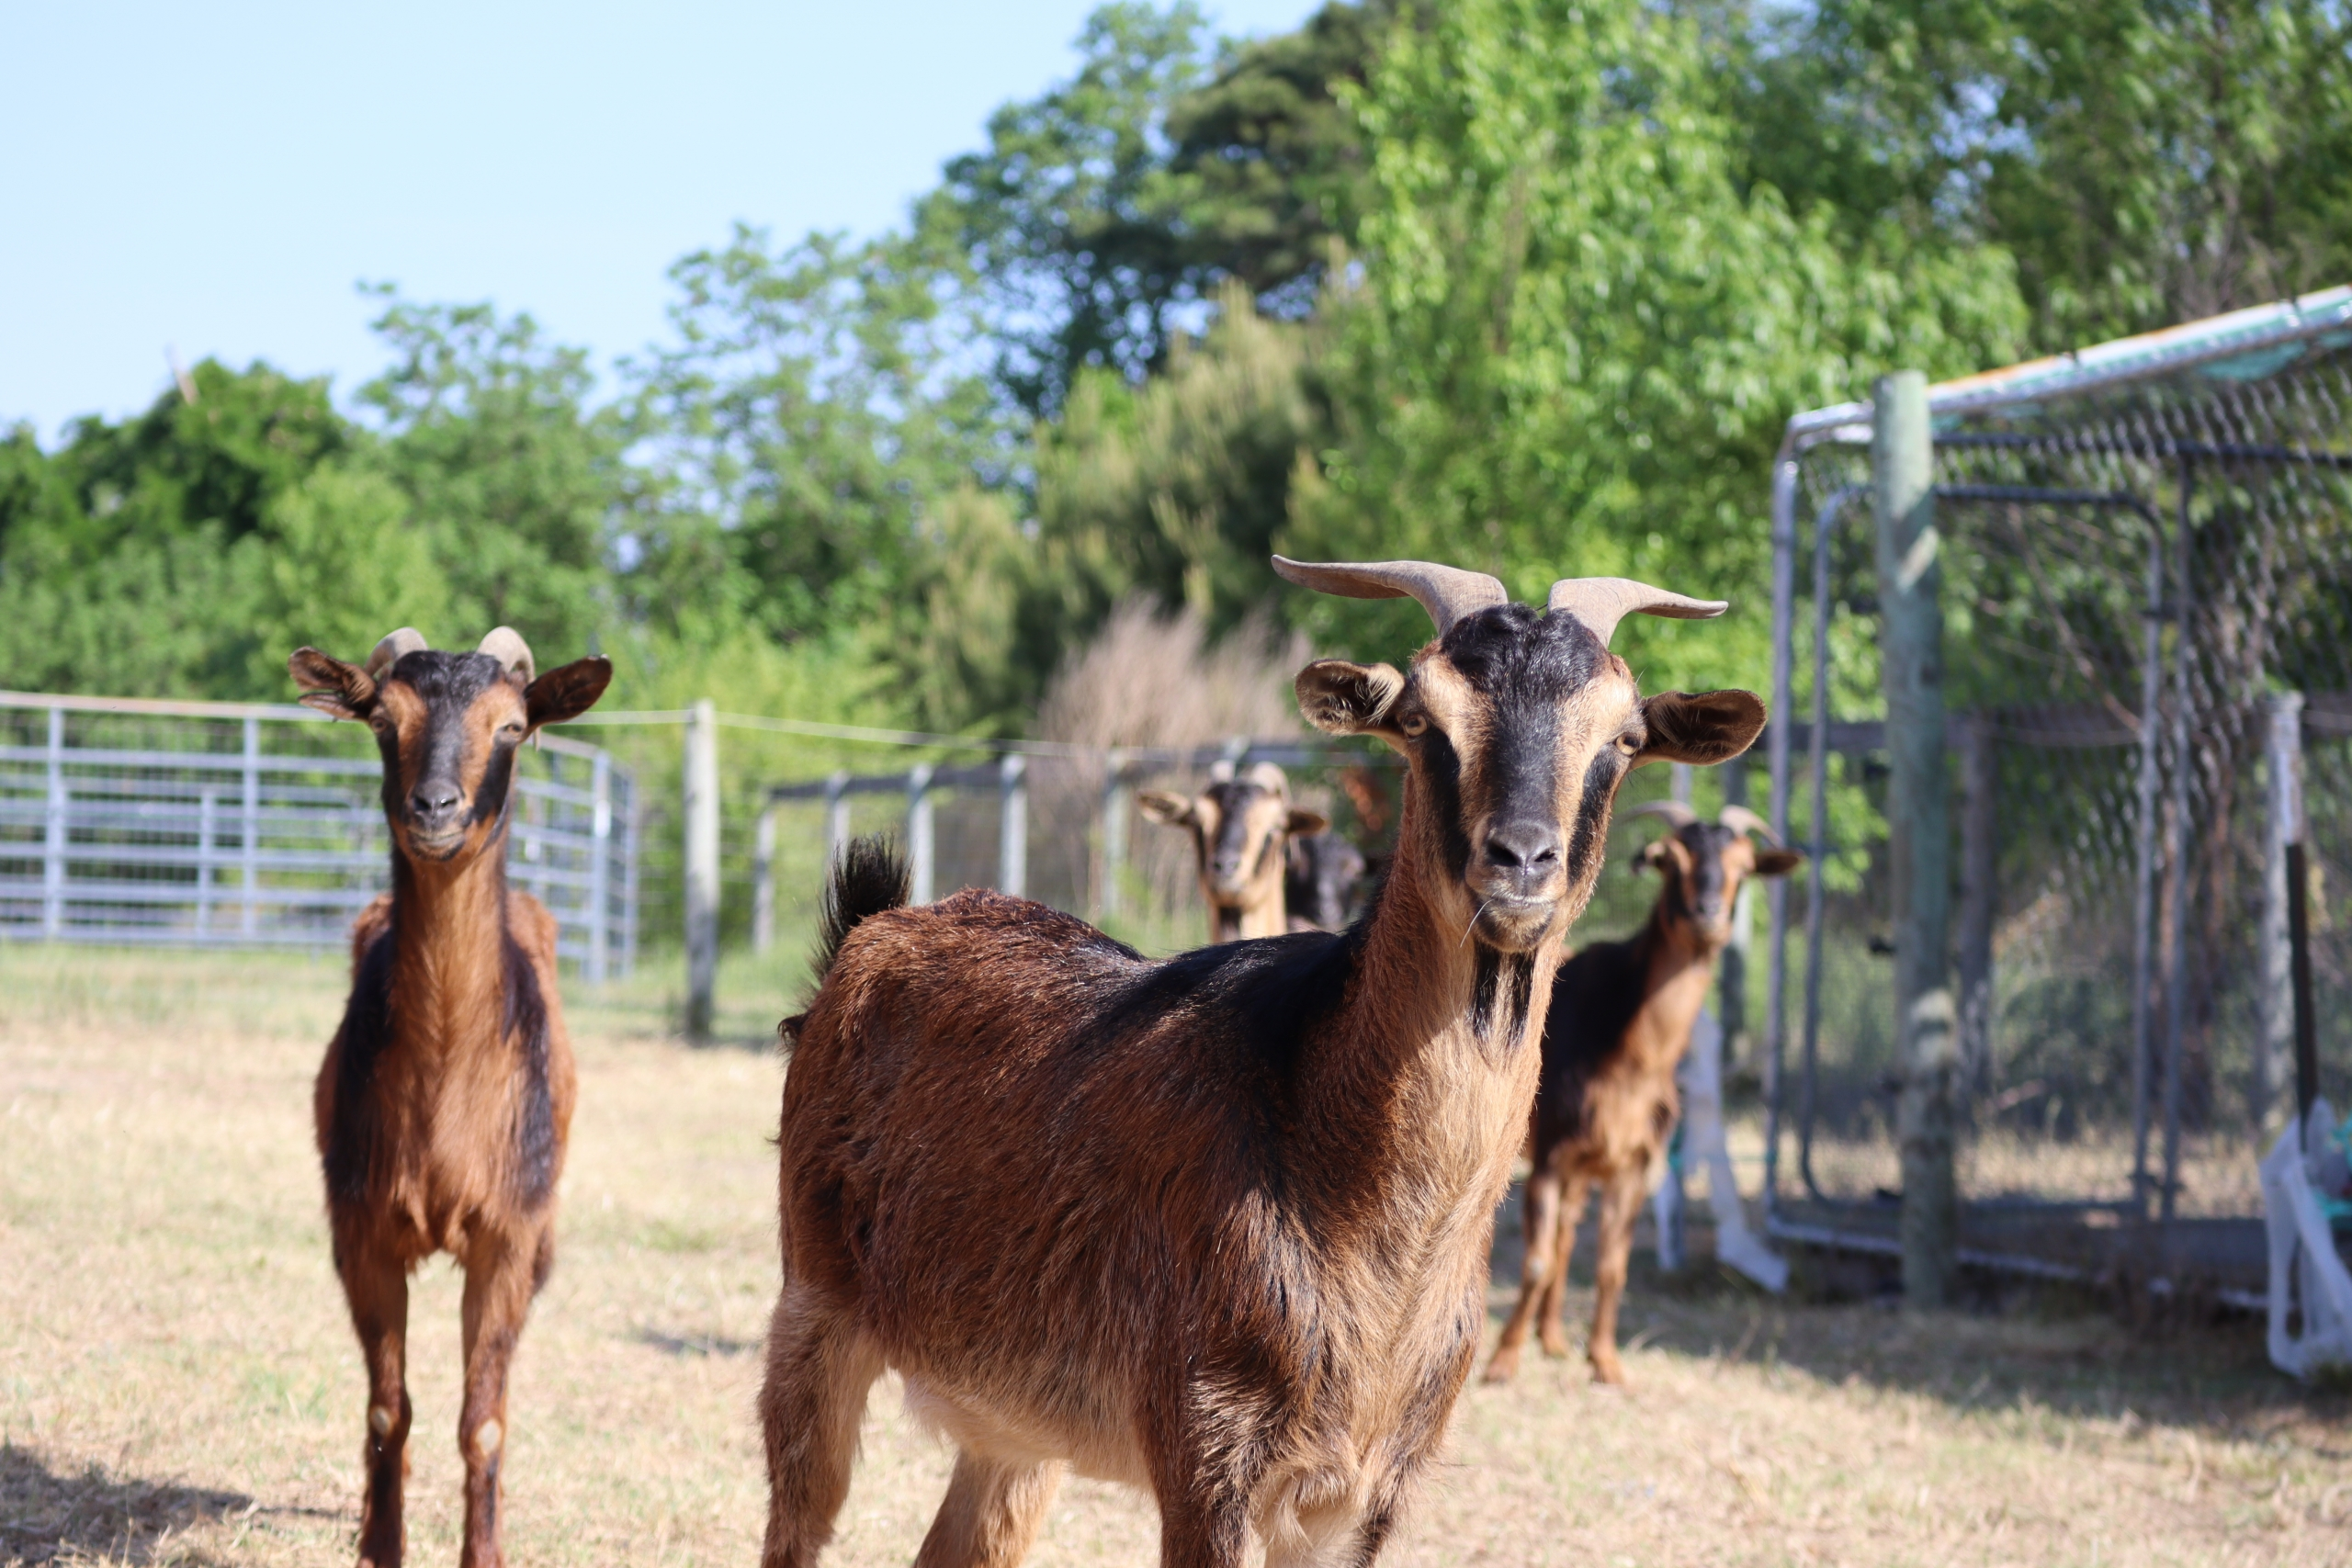 Critically endangered San Clemente Island Goats in the field